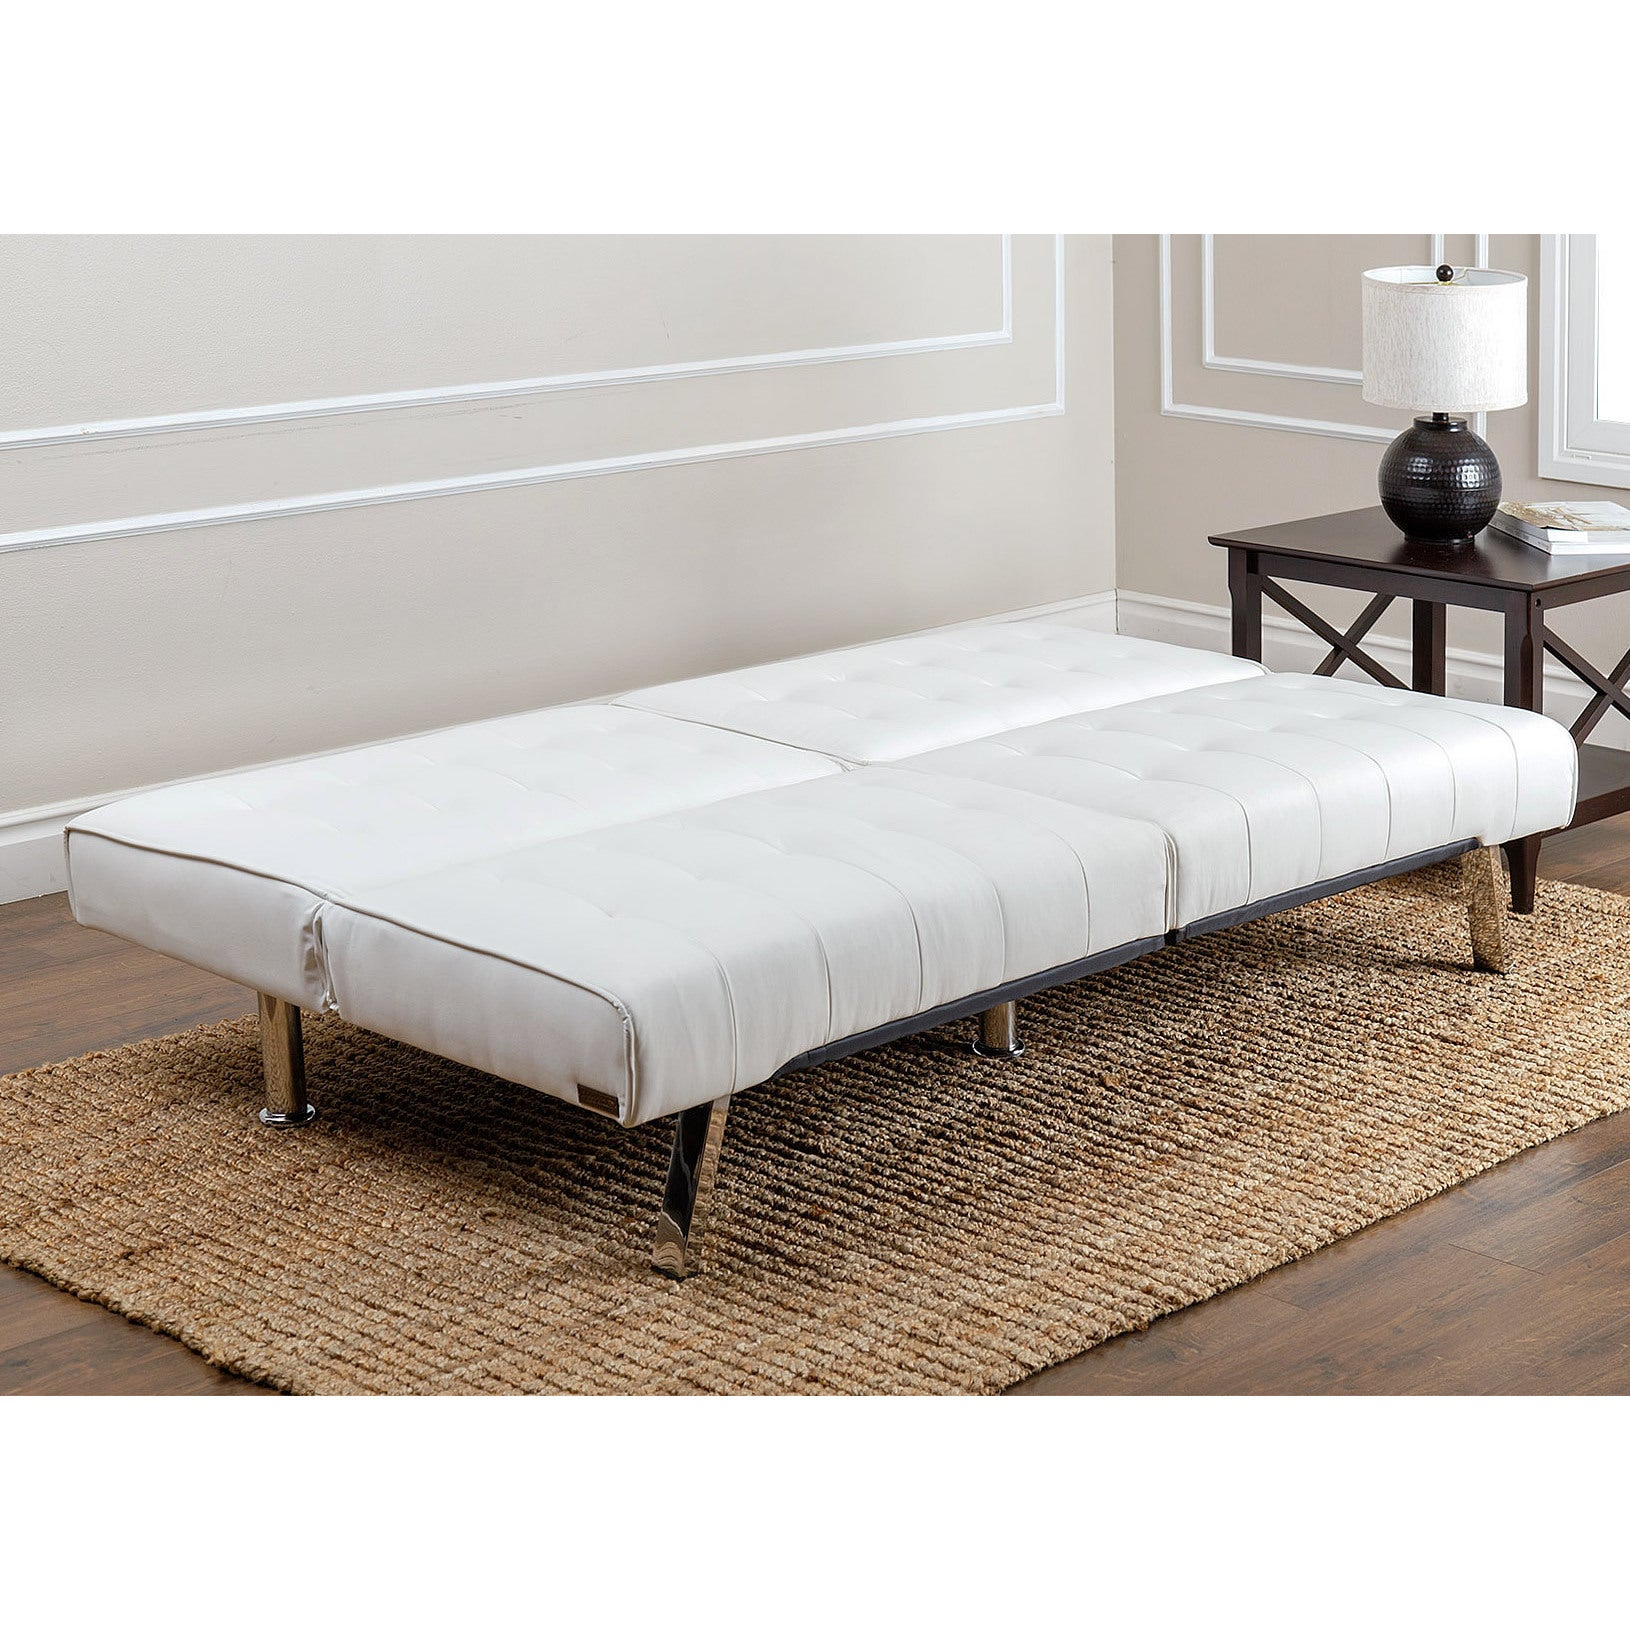 Abbyson Jackson Ivory Leather Foldable Futon Sofa Bed Free